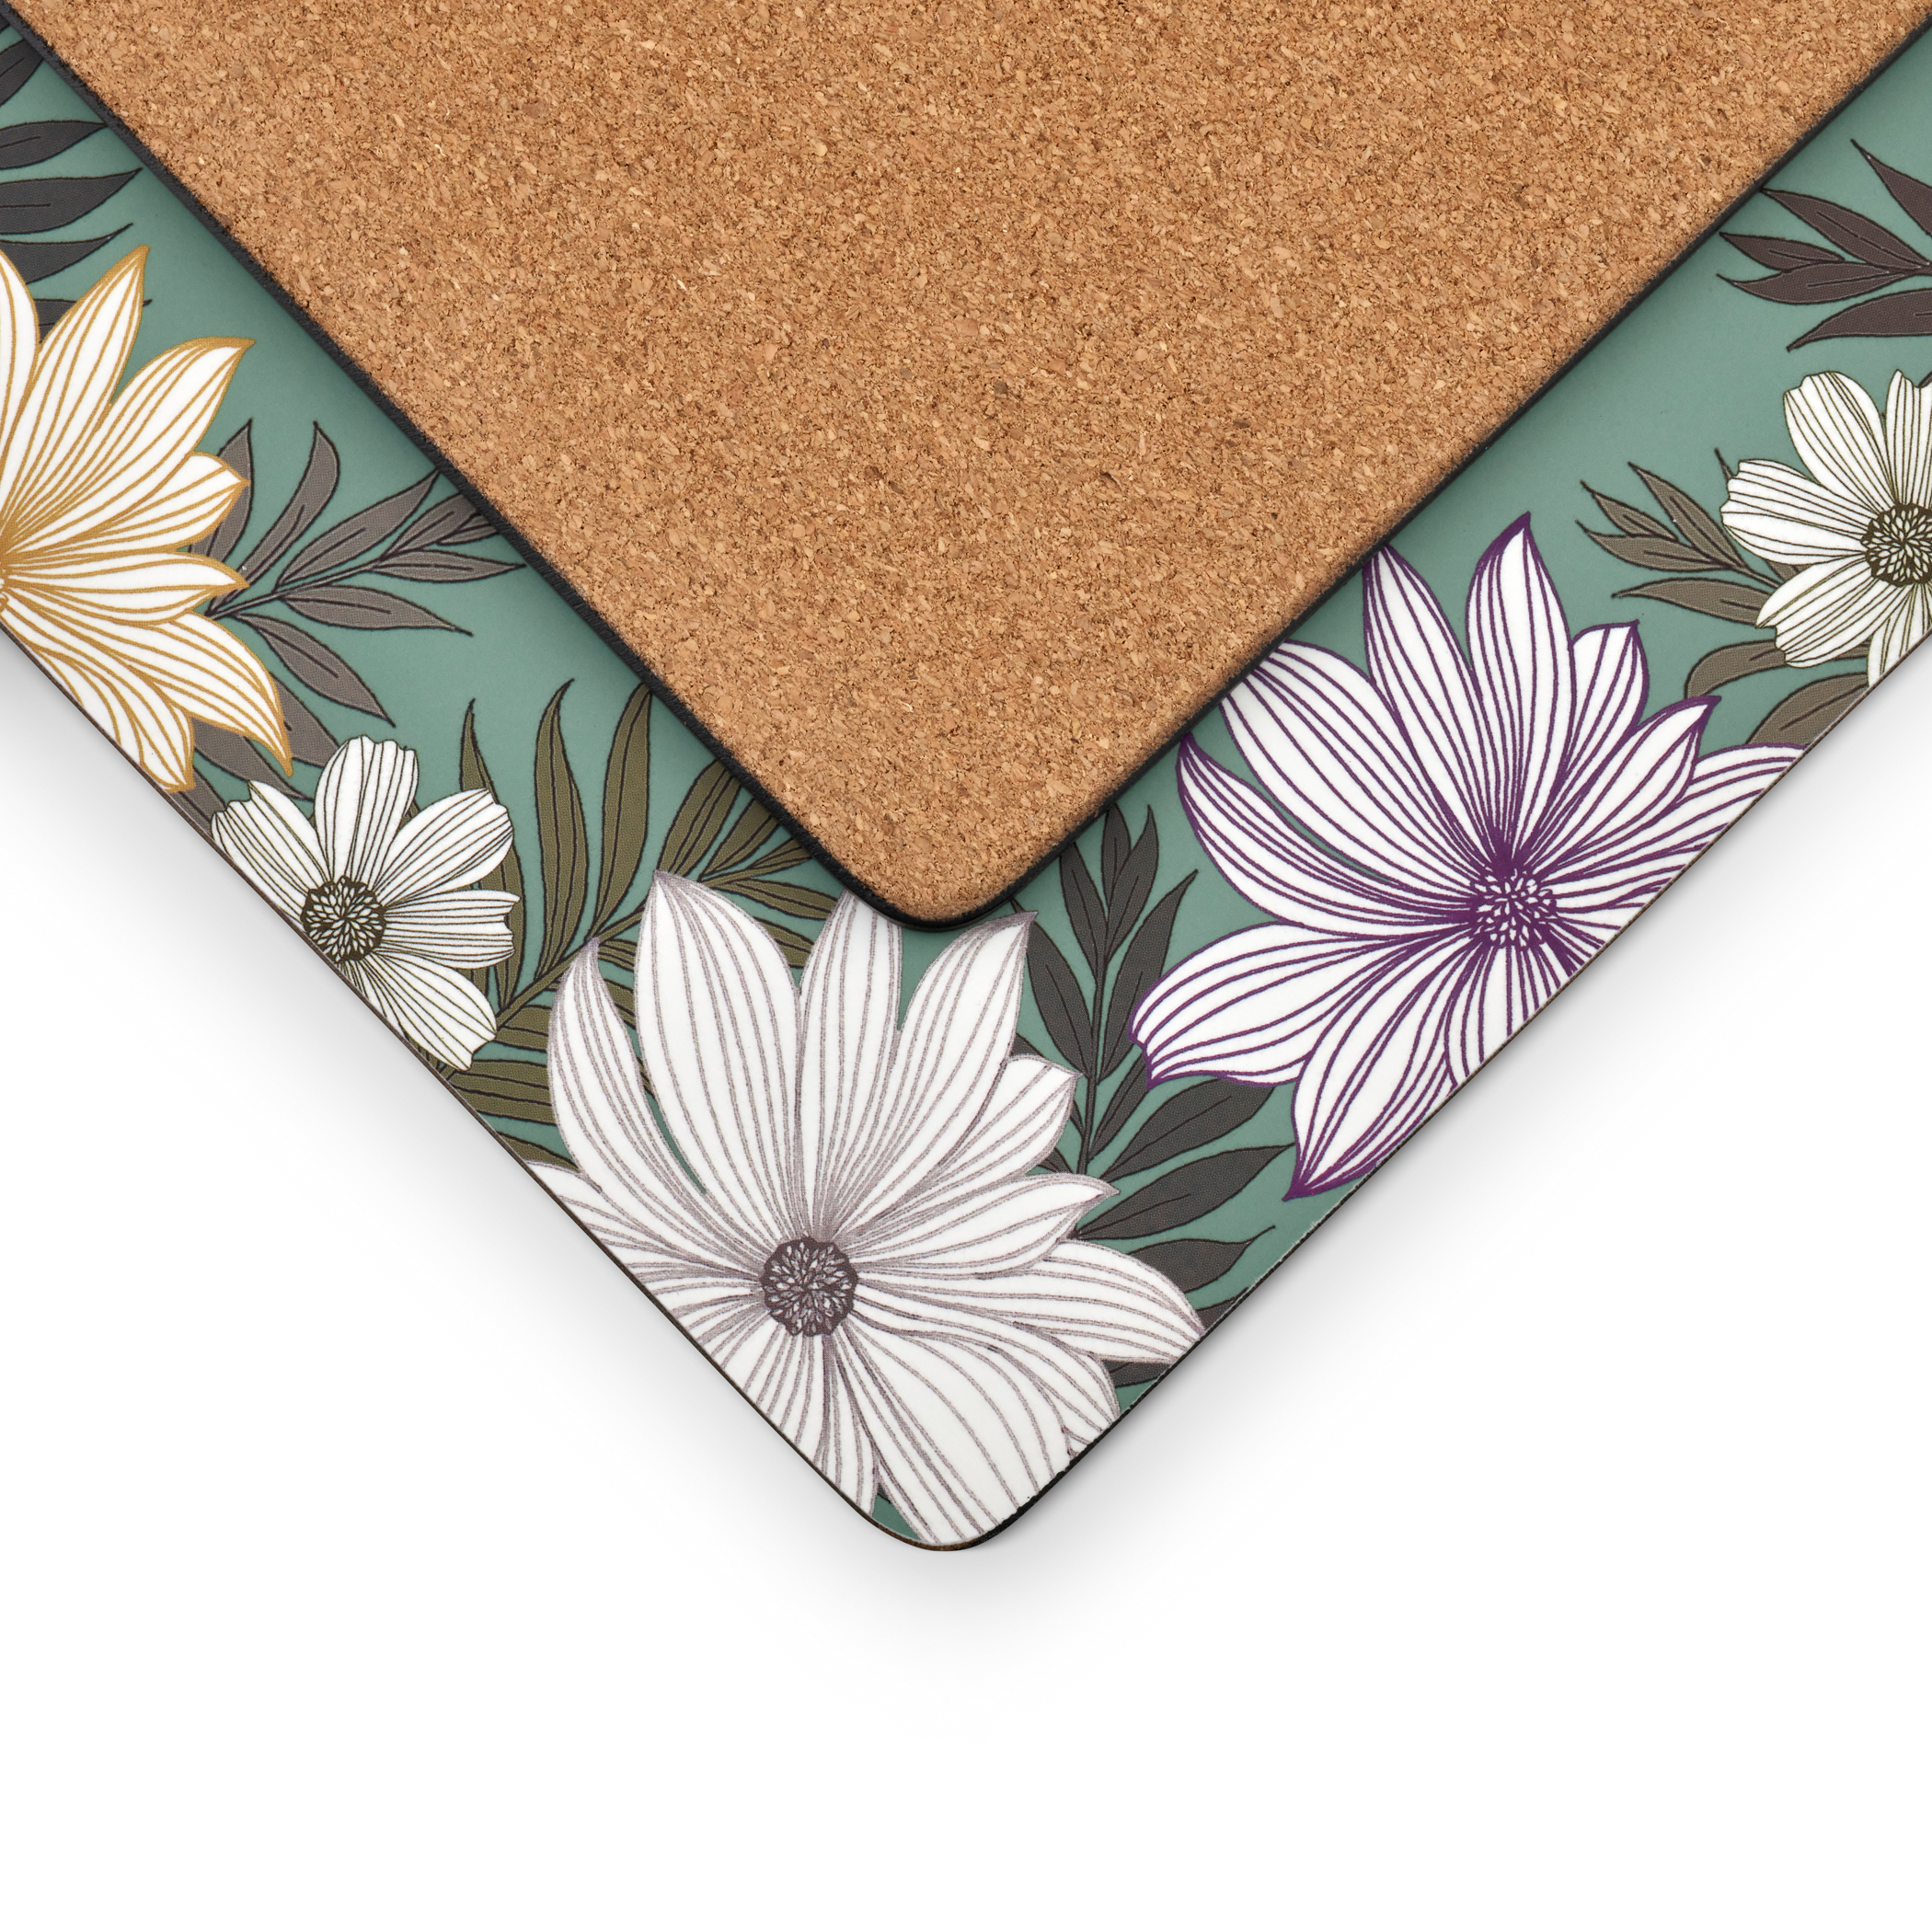 Pimpernel Atrium Placemats Set of 4 image number 1